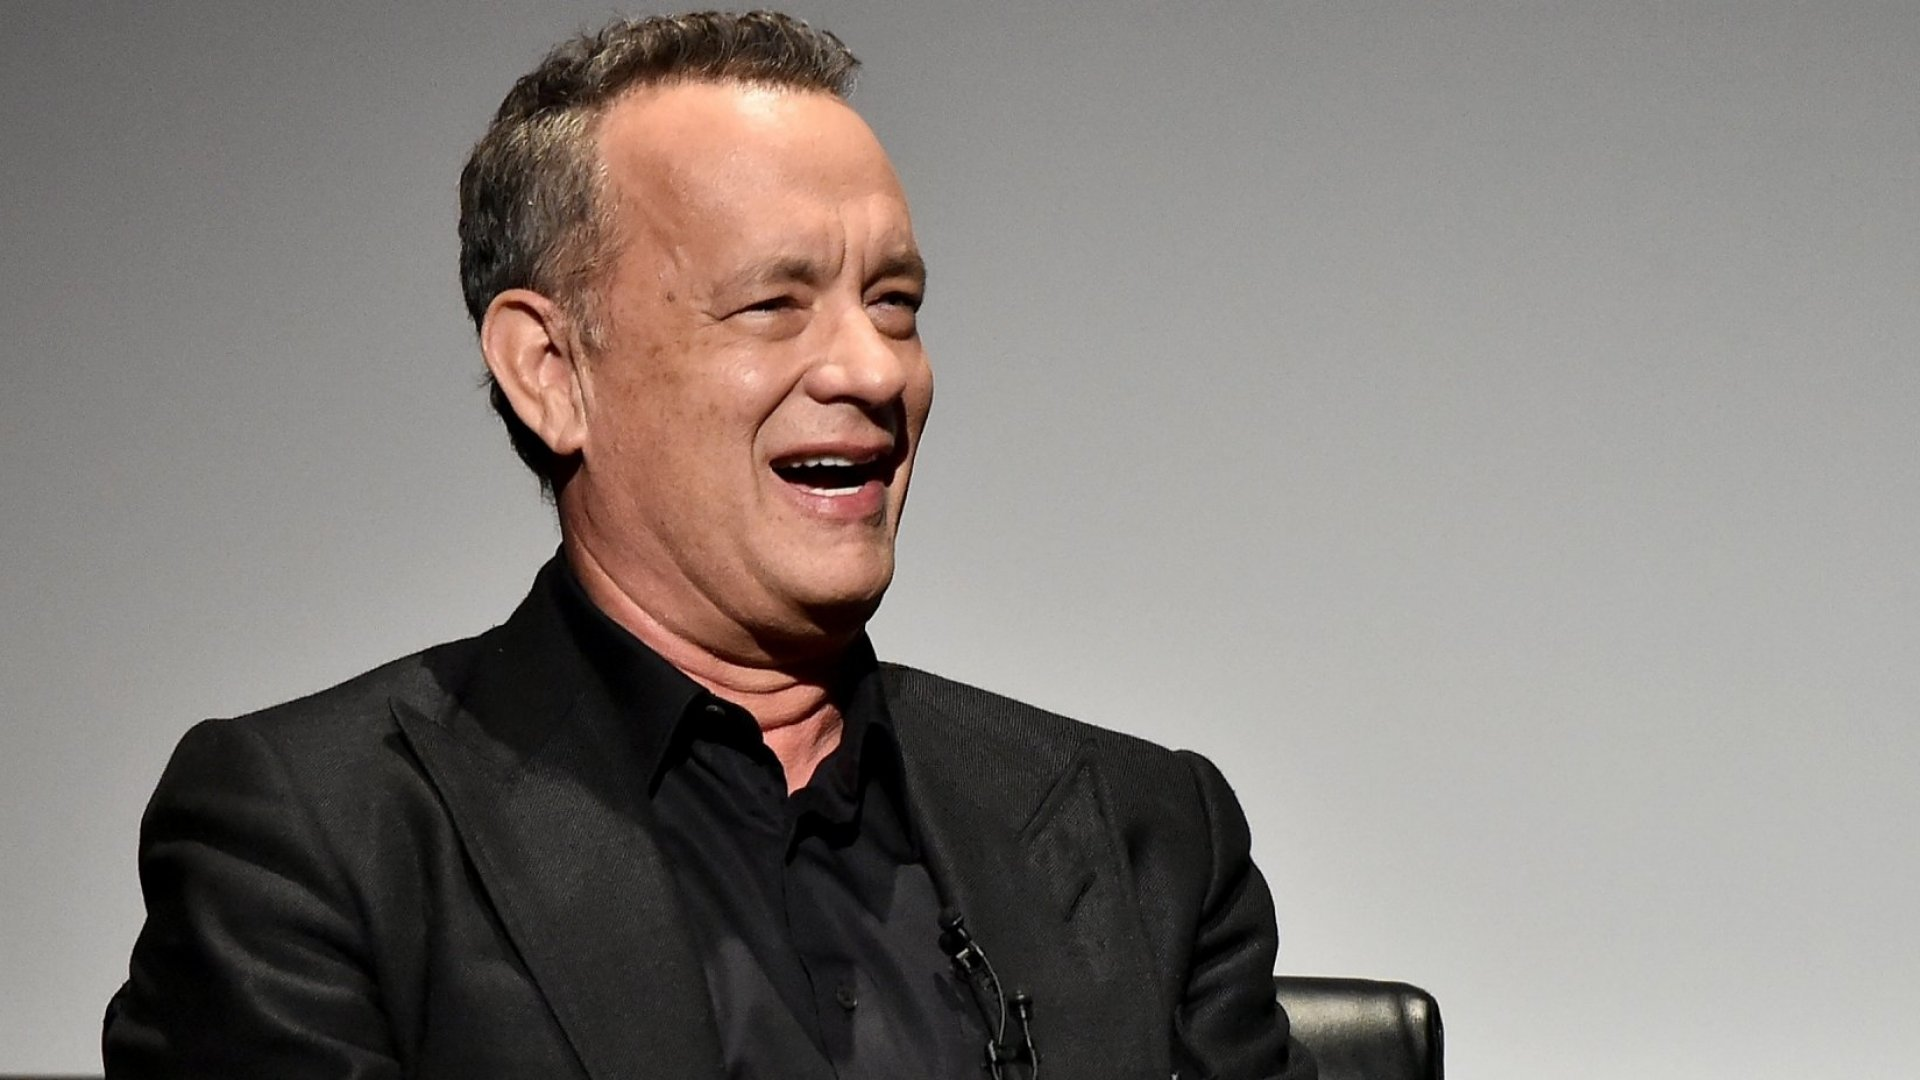 Tom Hanks Just Revealed the Single Word That Led to His Great Success